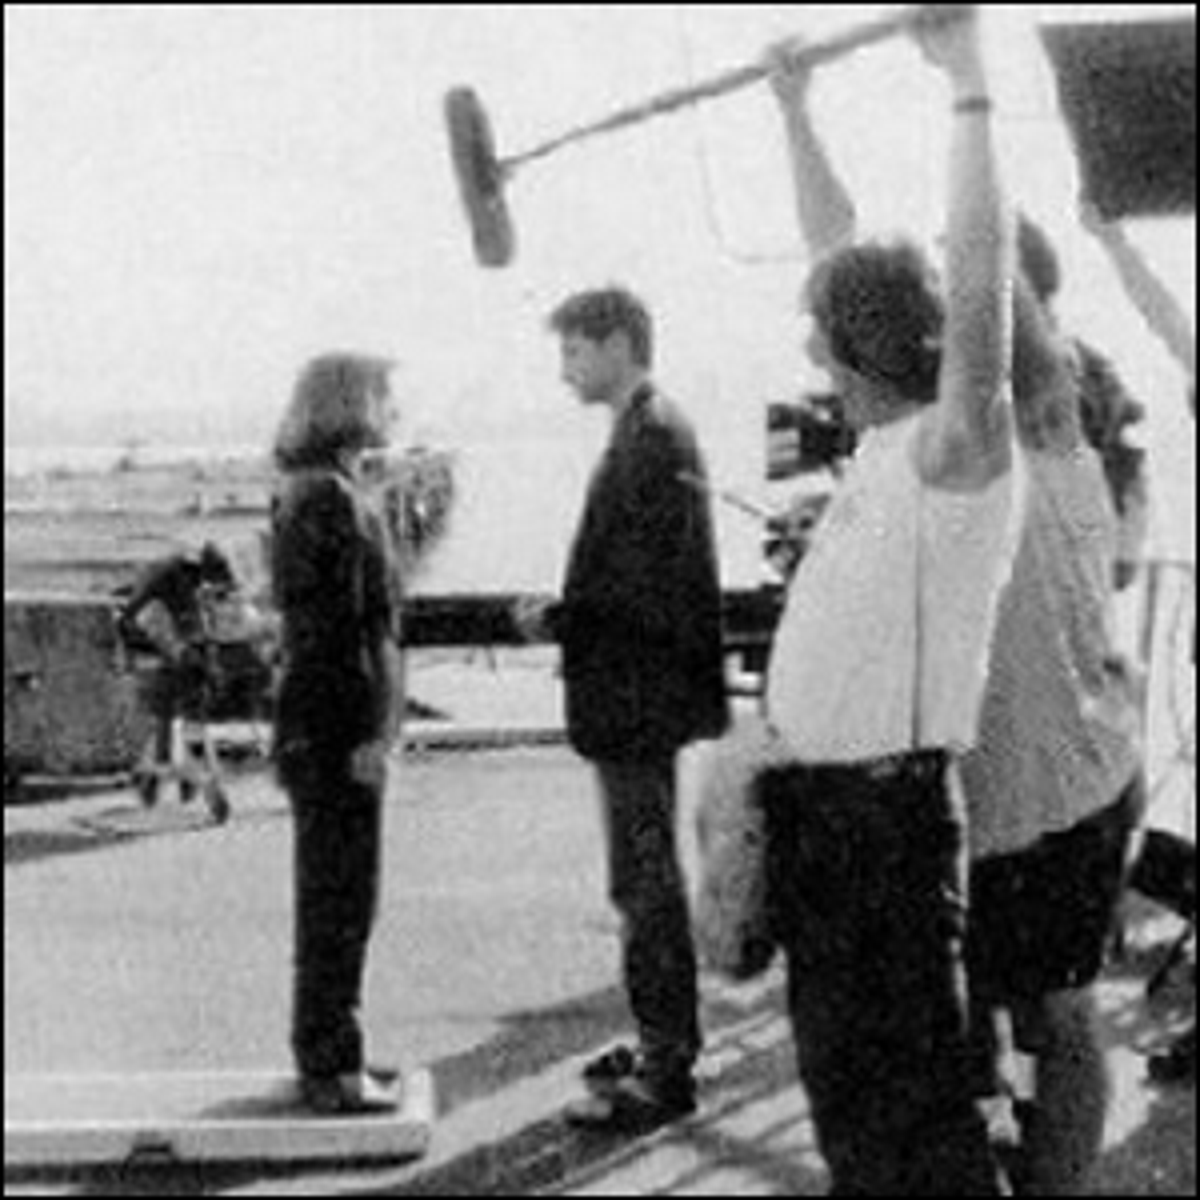 Actress Gillian Anderson standing on an apple box next to her co-star David Duchovny.